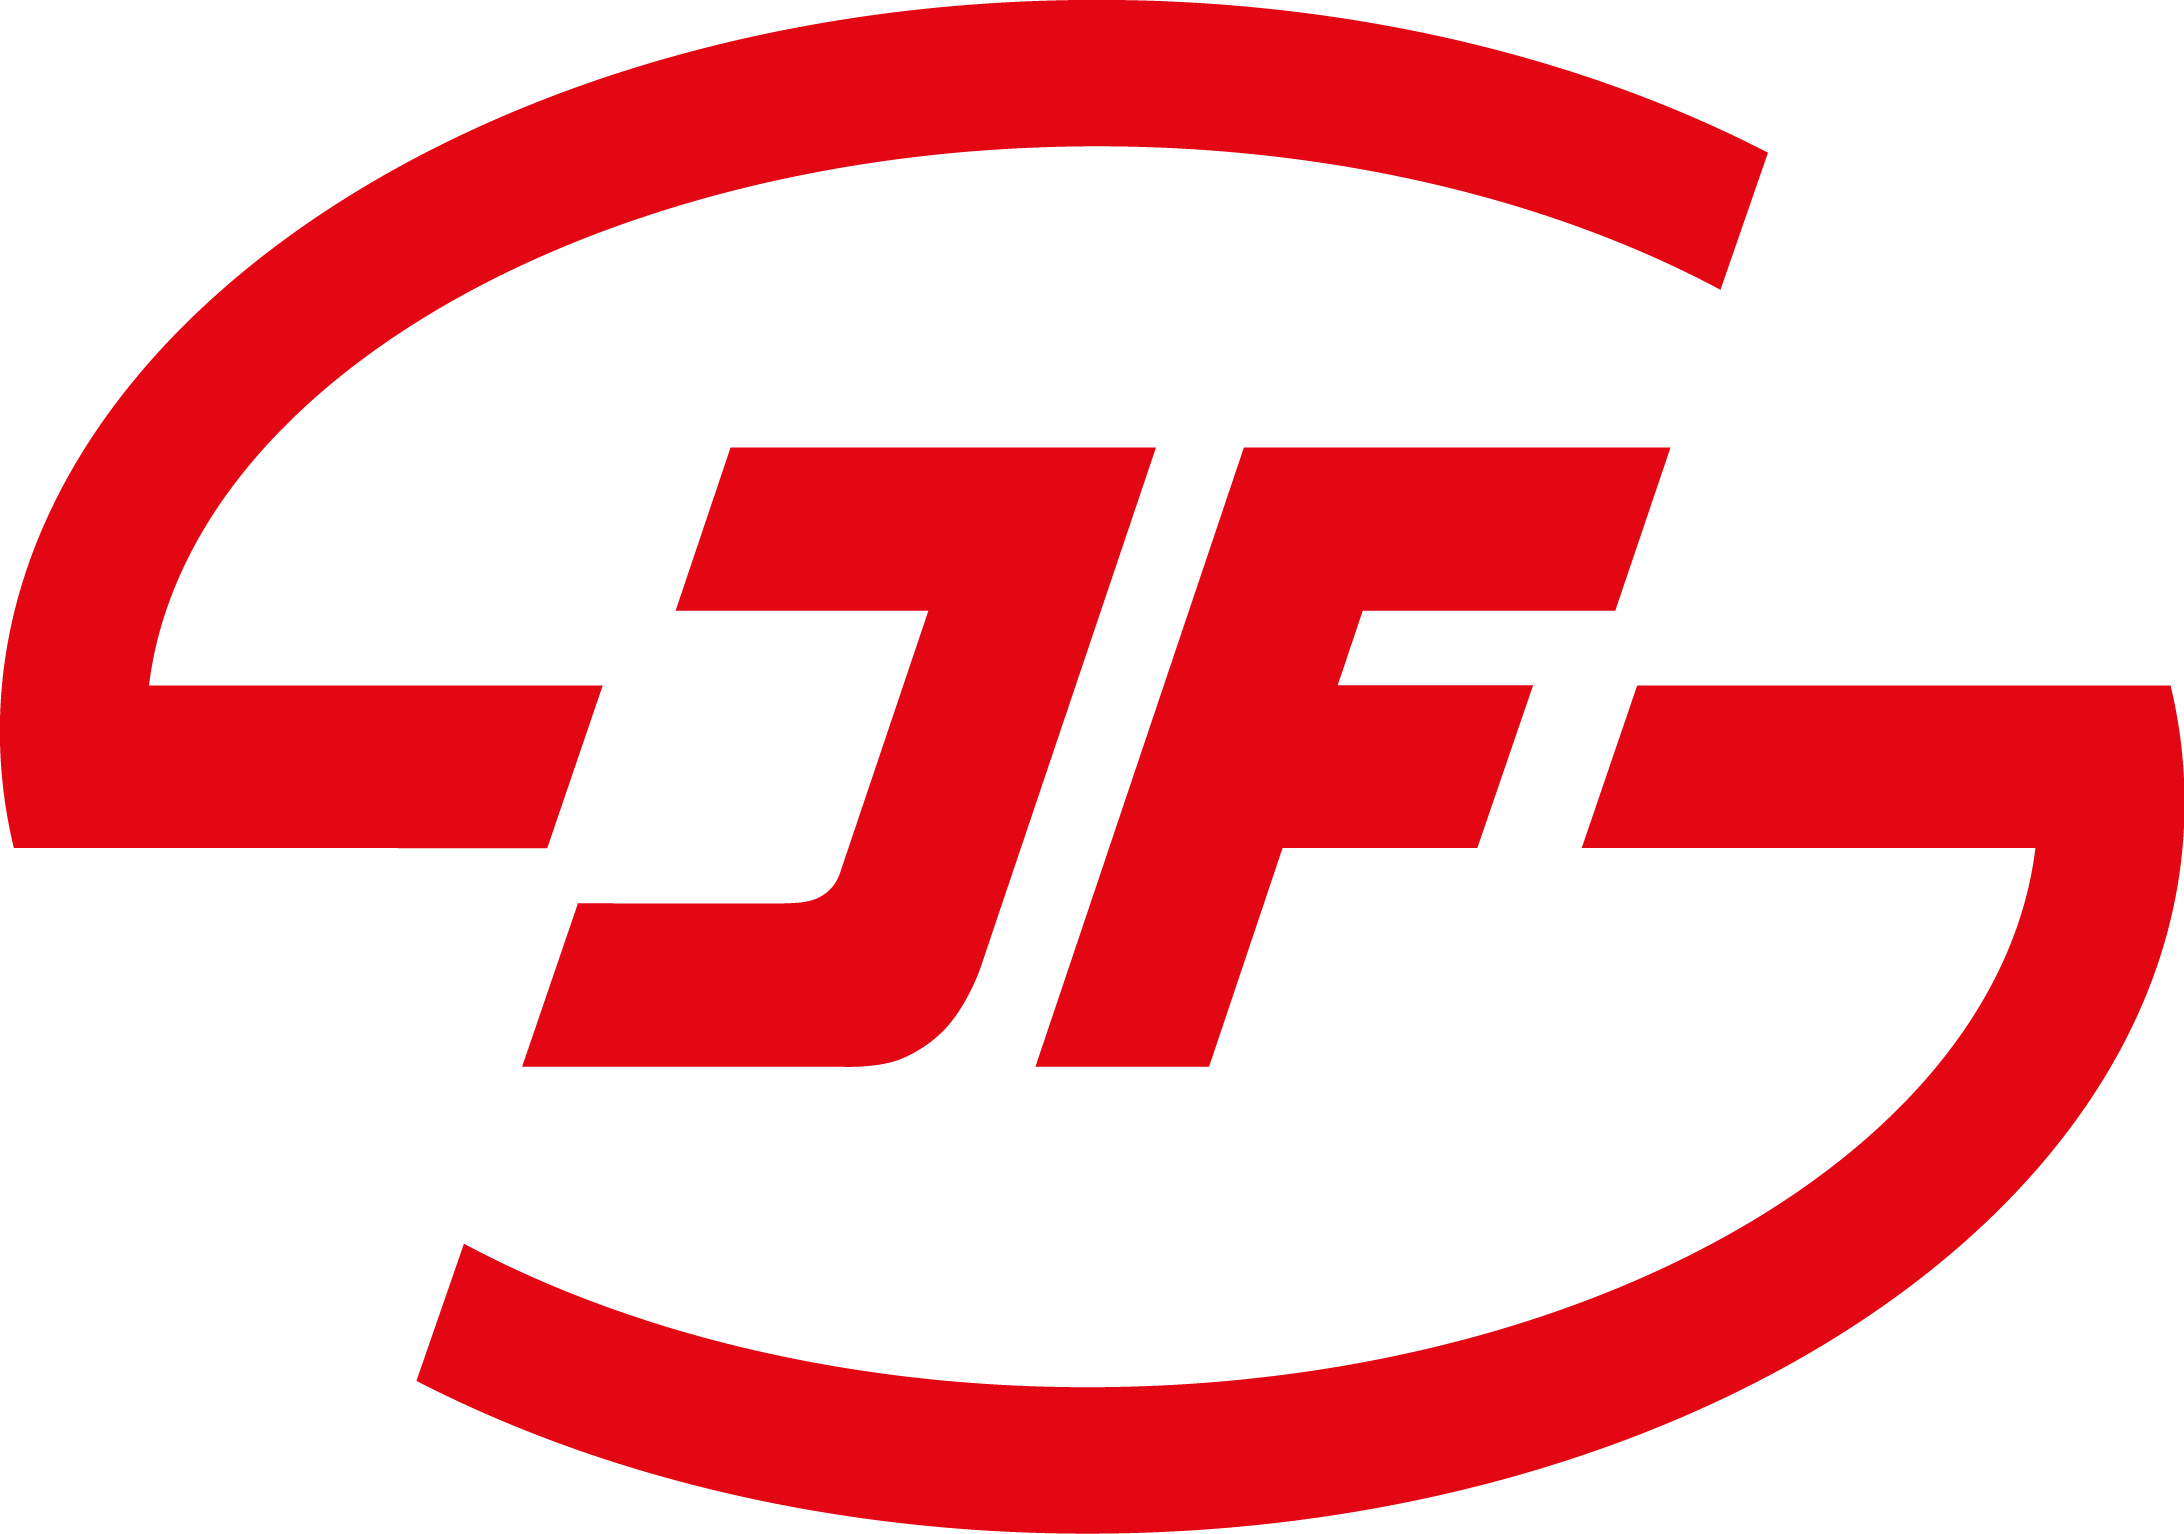 jf logo red version c0 m100 y100 k0